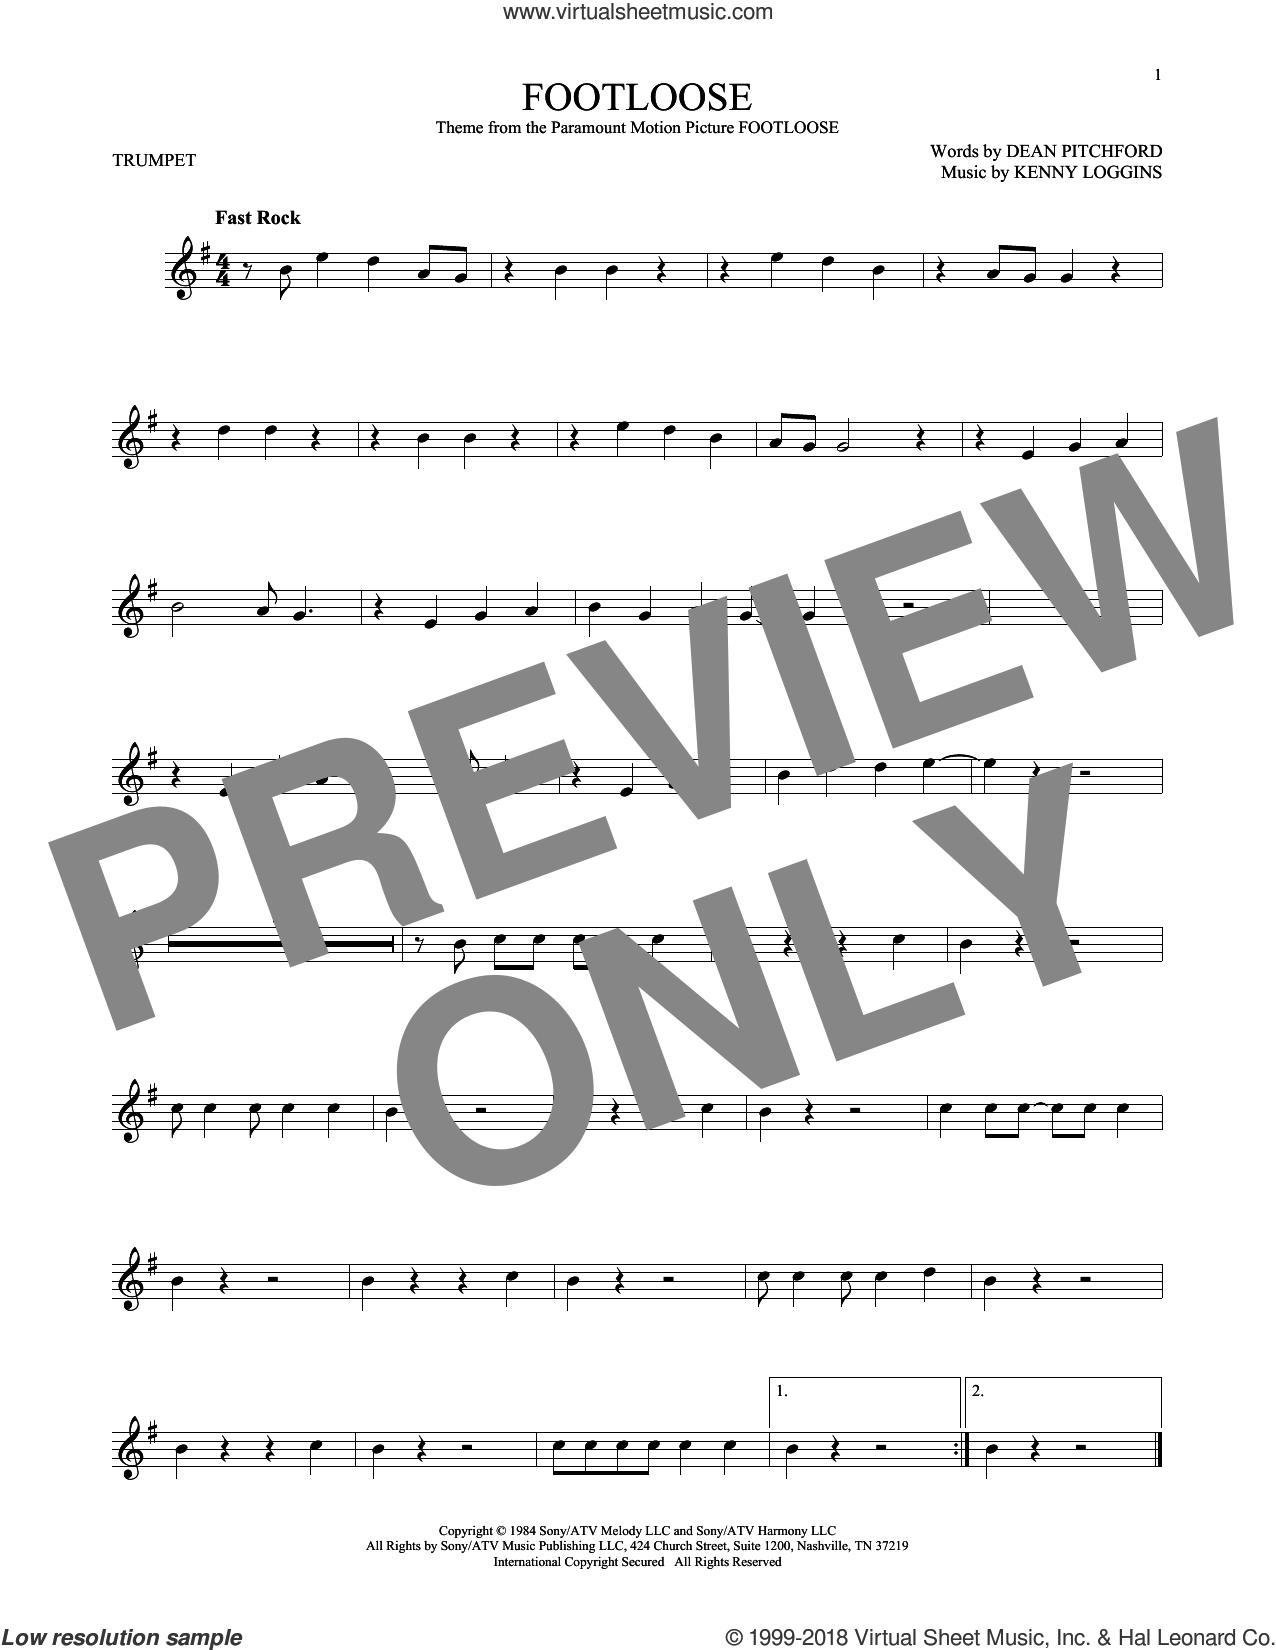 Footloose sheet music for trumpet solo by Kenny Loggins, Blake Shelton and Dean Pitchford, intermediate skill level